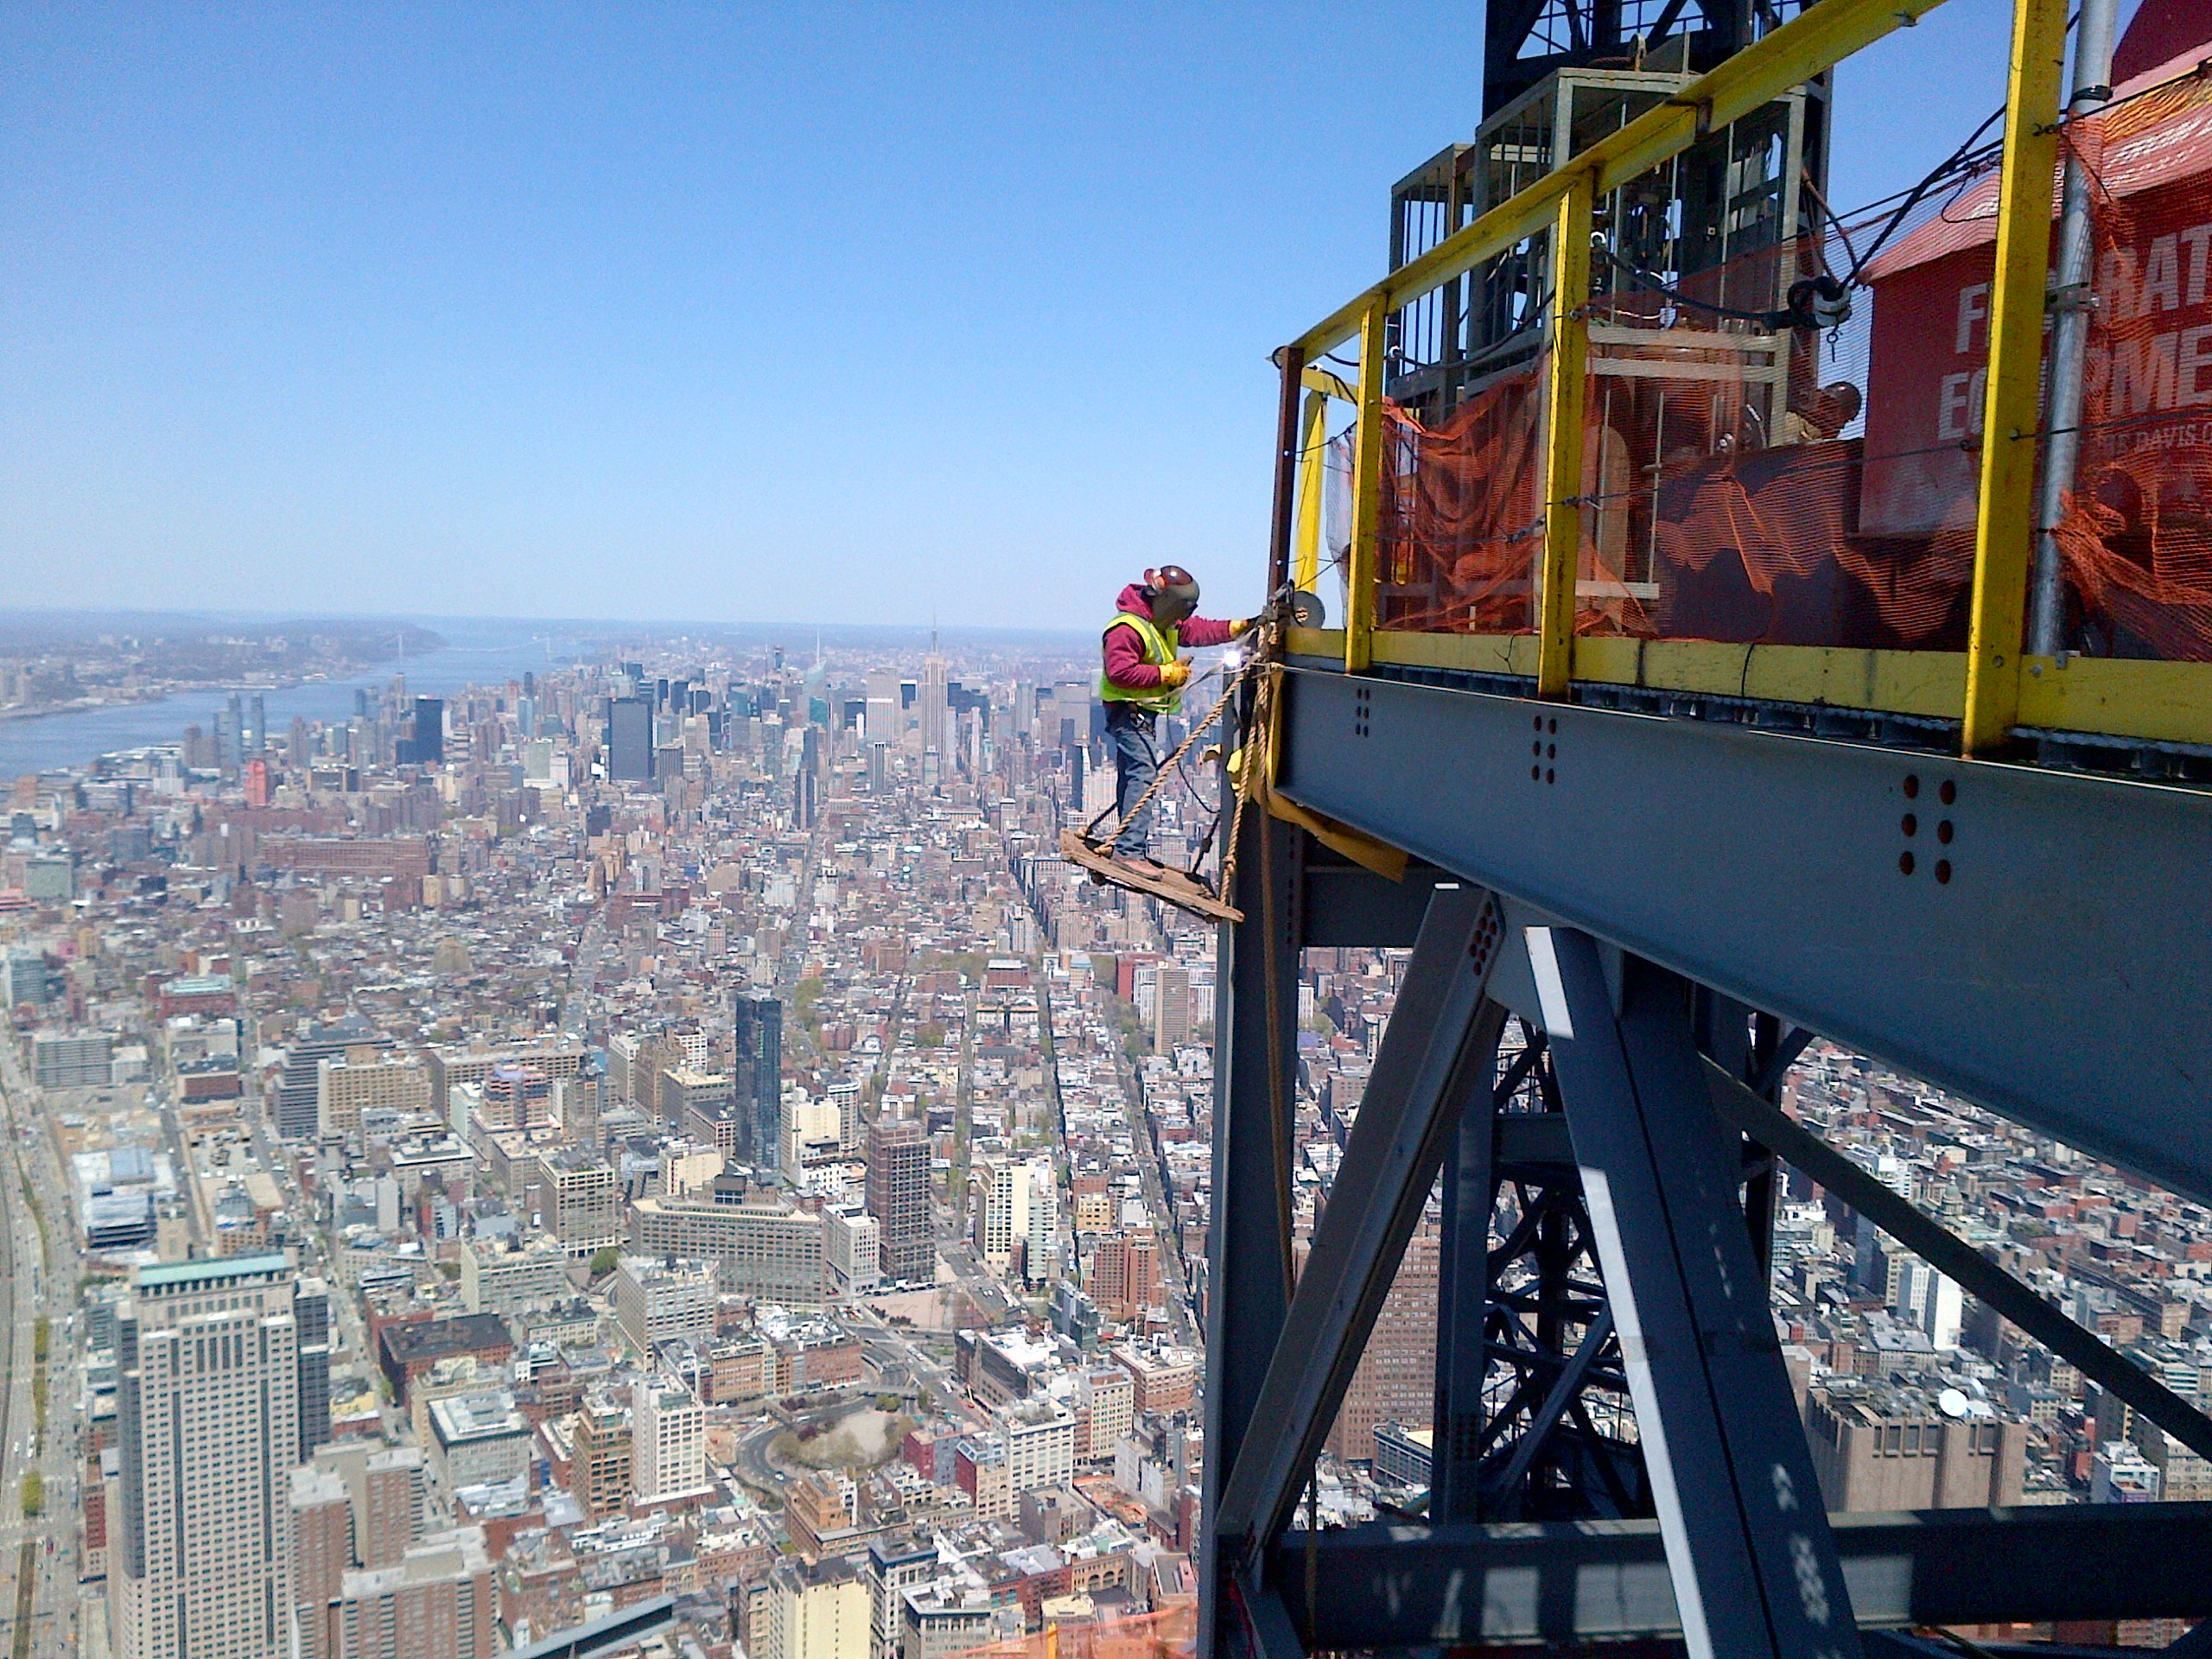 NYC IRON WORKERS – LOCALS 40 & 361 JOINT APPRENTICESHIP PROGRAM